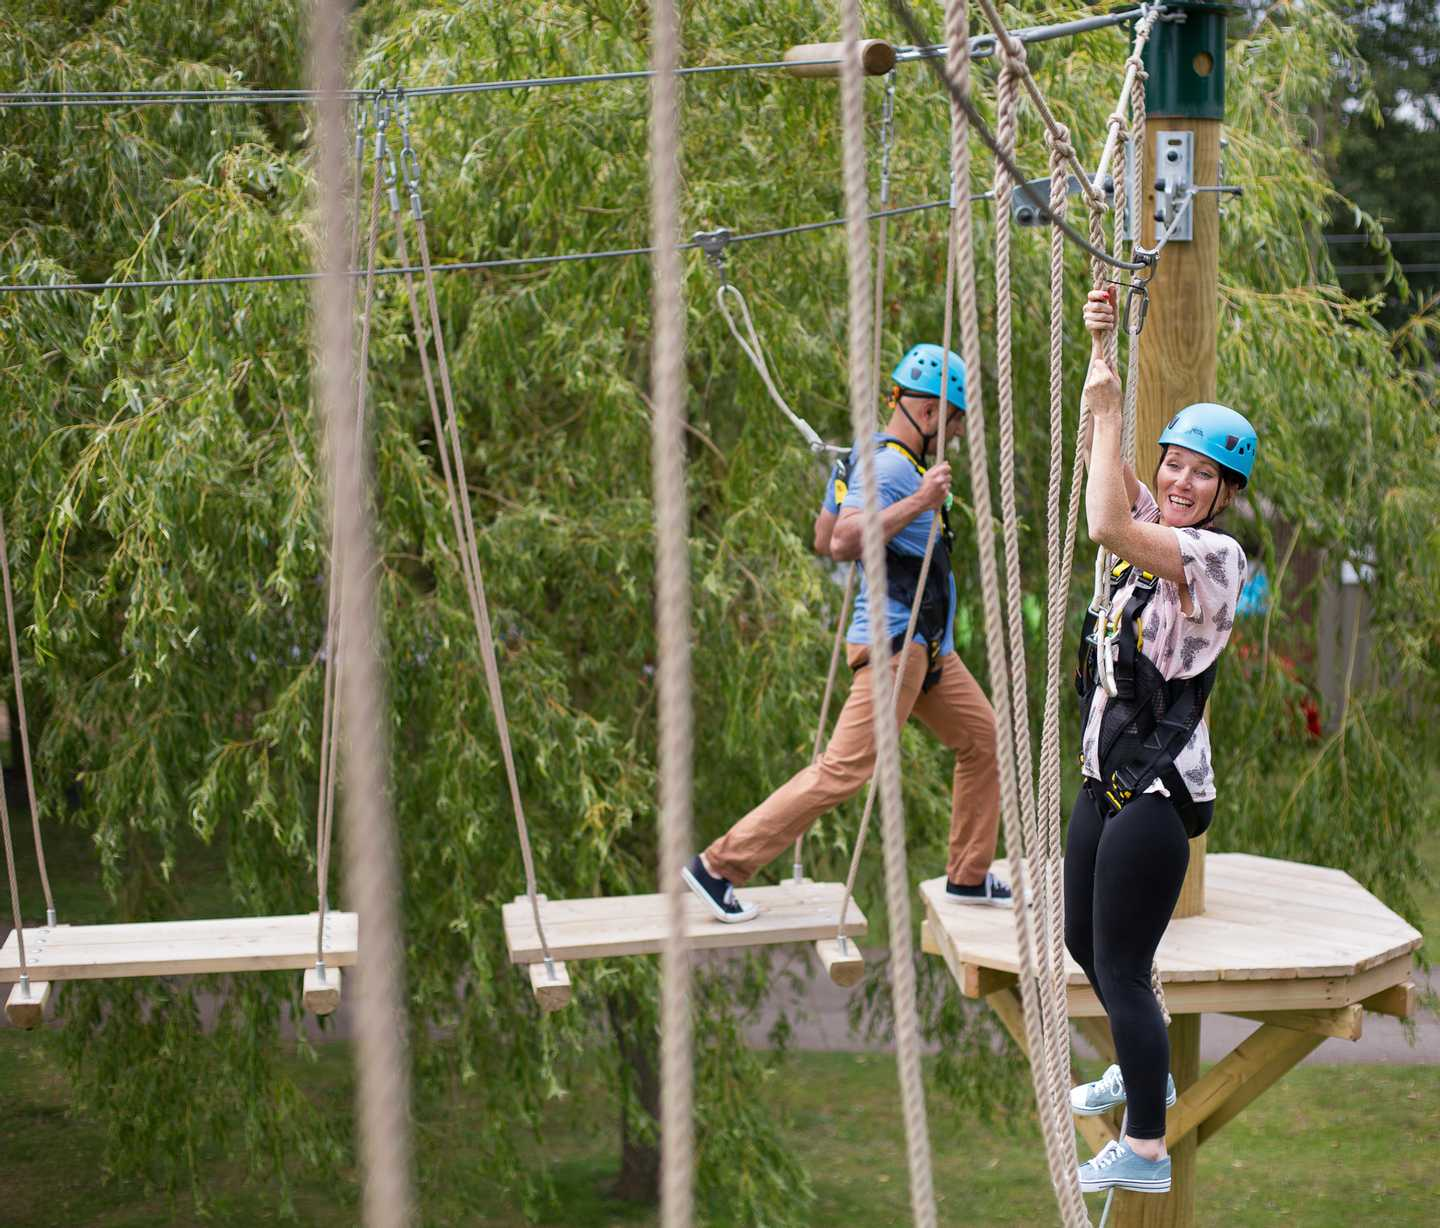 Guests climbing their way through the Aerial Adventure course